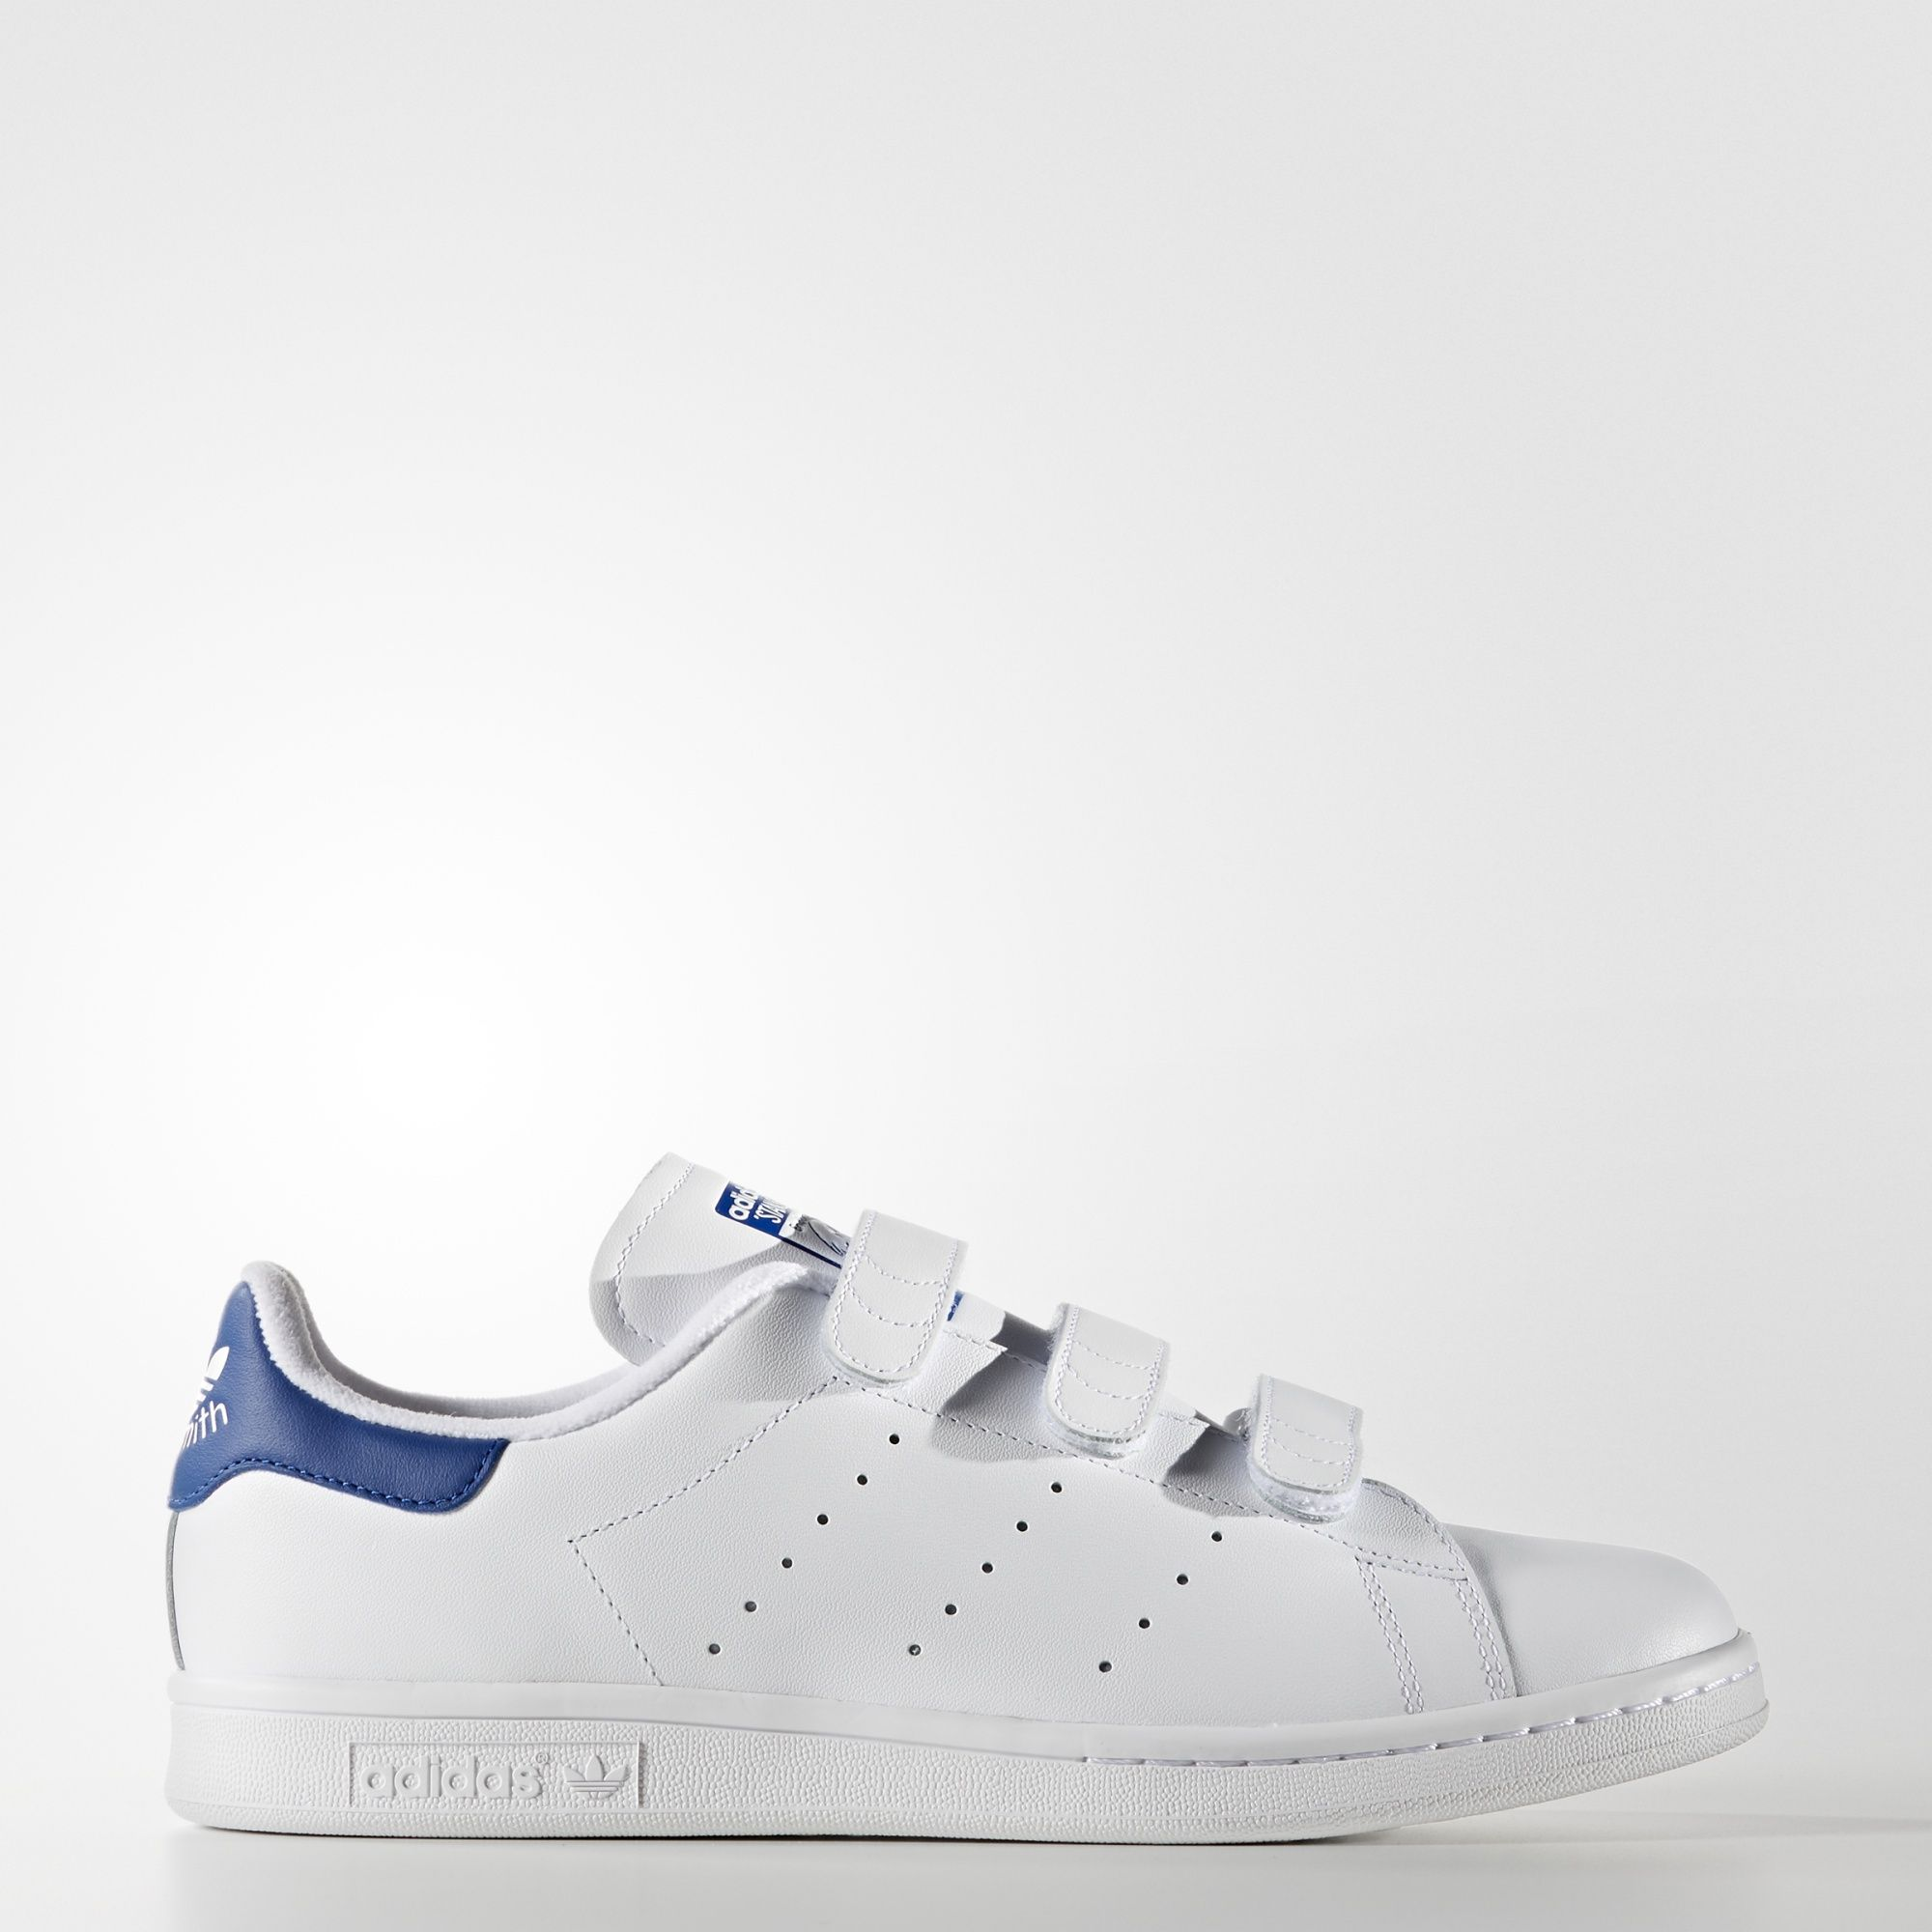 Stan Smith Shoes White Mens | Stan smith shoes, Shoes, Stan